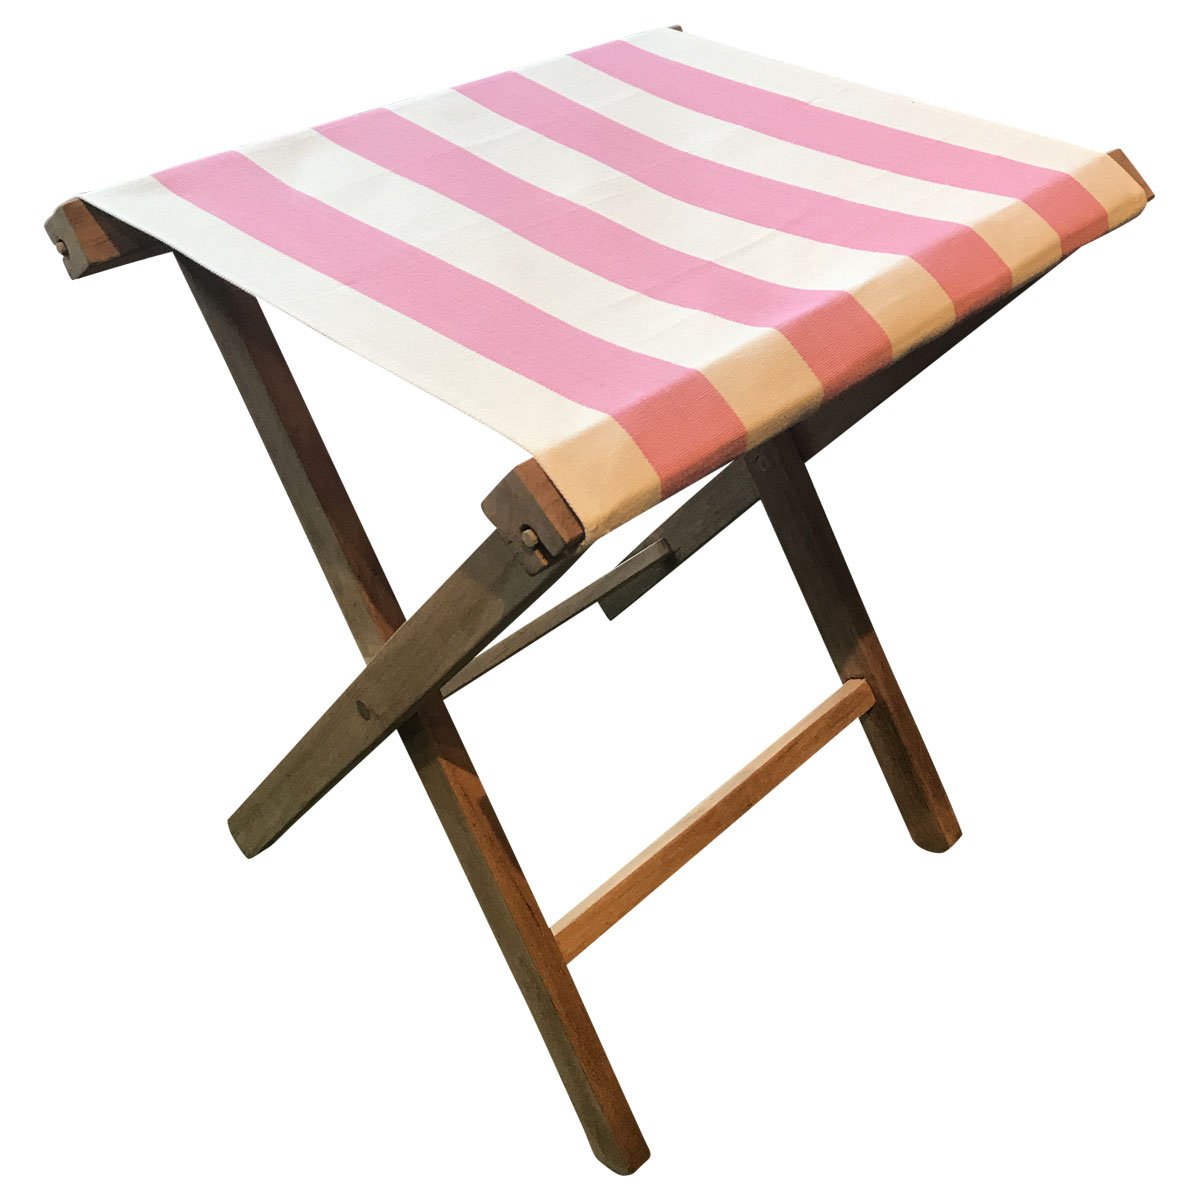 Portable Folding Stools with Striped Seats pink